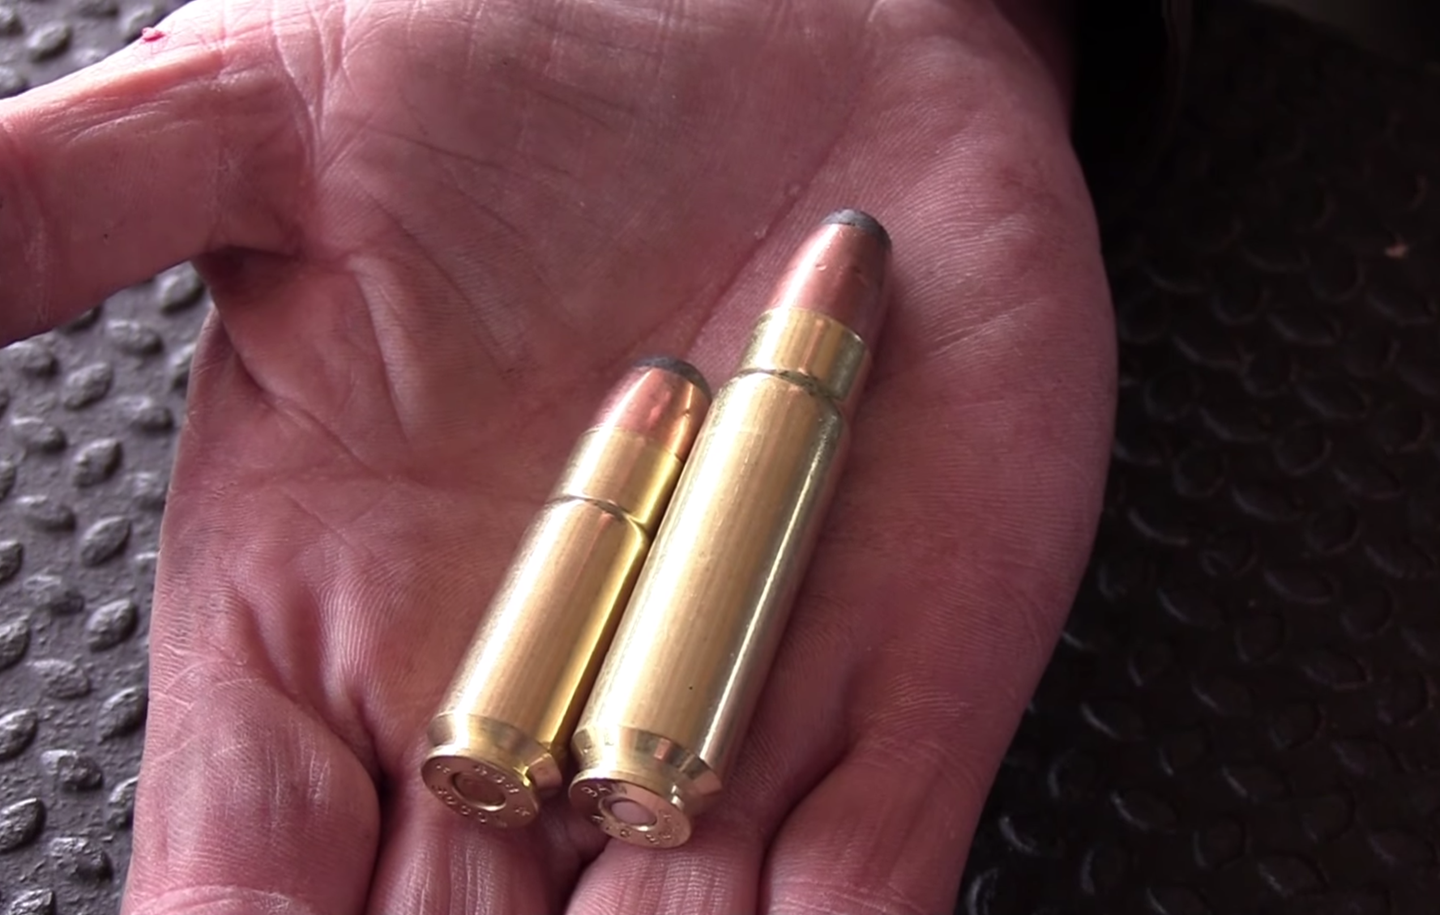 The 475 Bishop (right) next to a .458 SOCOM (left).